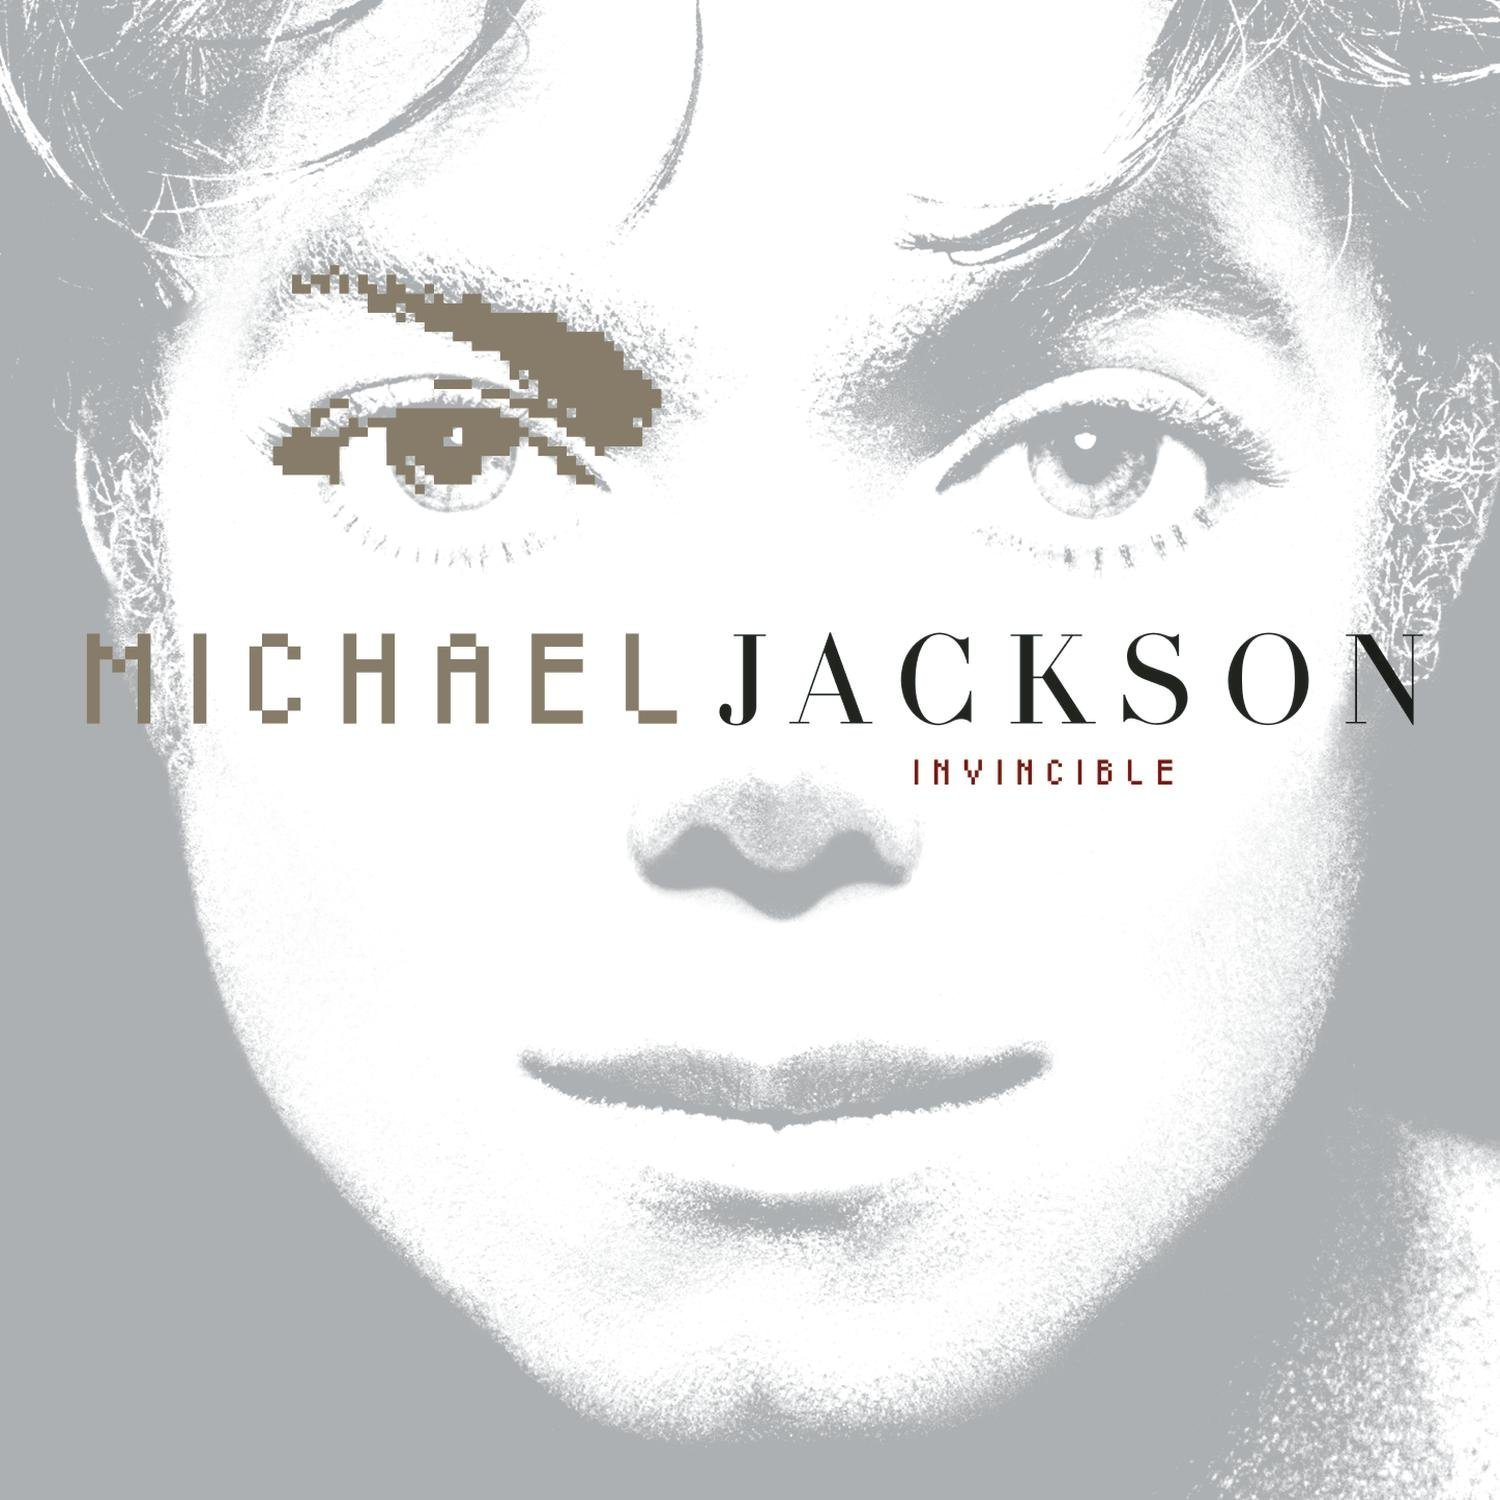 audio review : Invincible ( album ) ... Michael Jackson